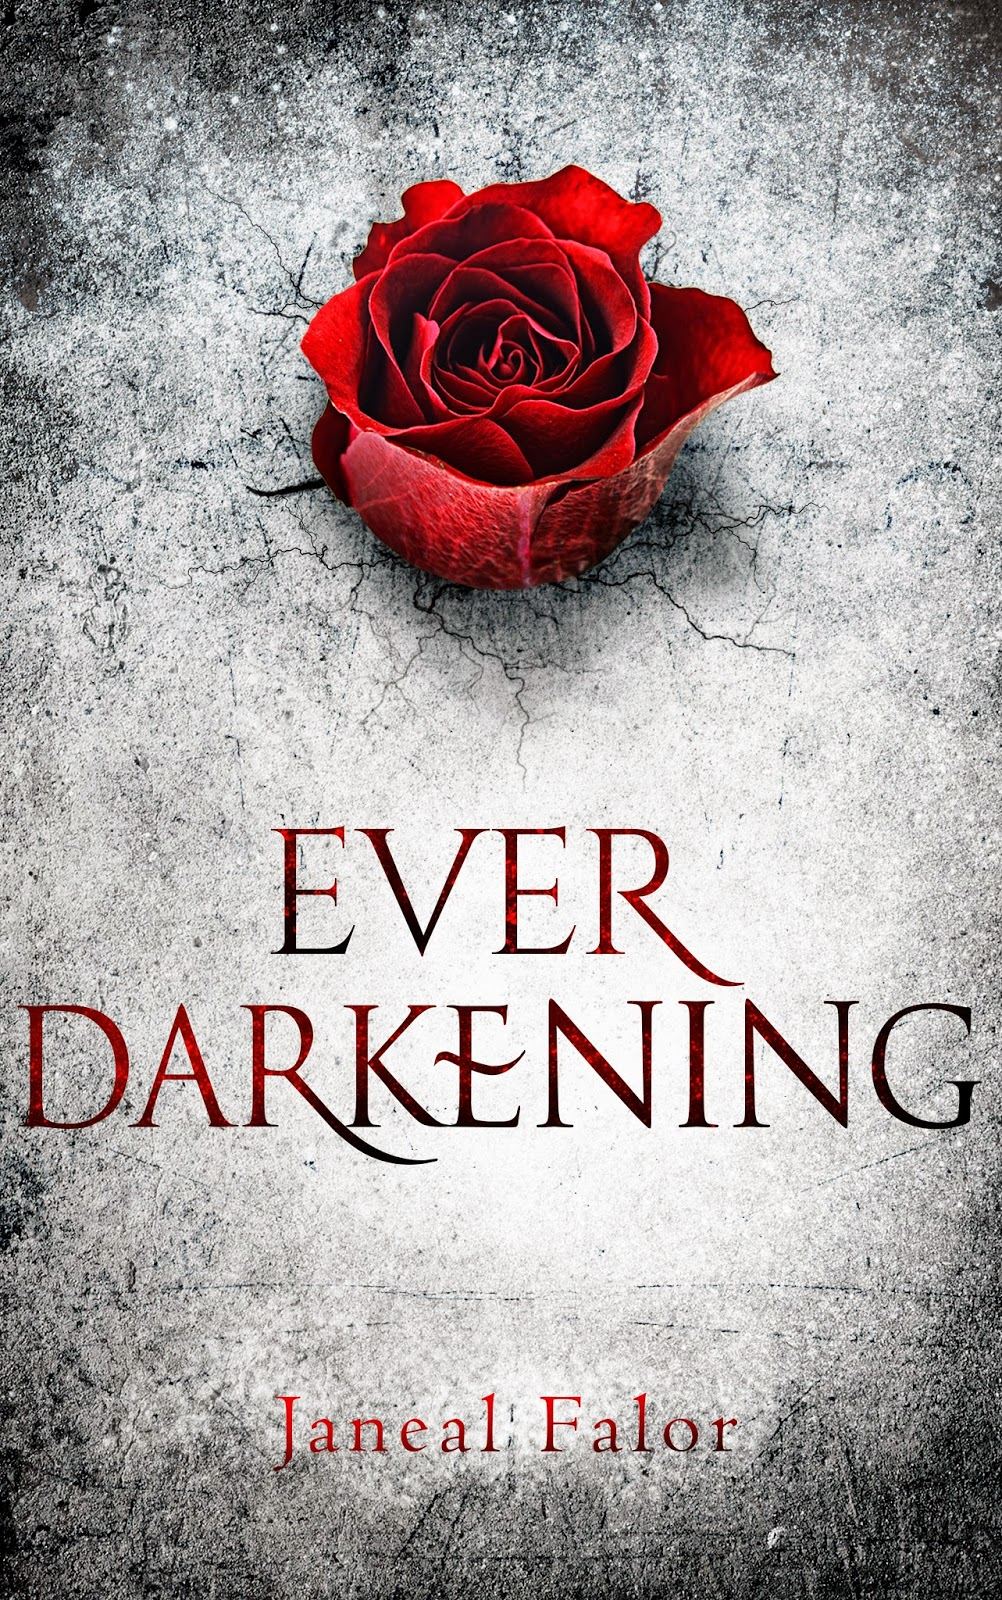 #CoverReveal & Giveaway: Ever Darkening by Janeal Falor @janealfalor #YA #Promo